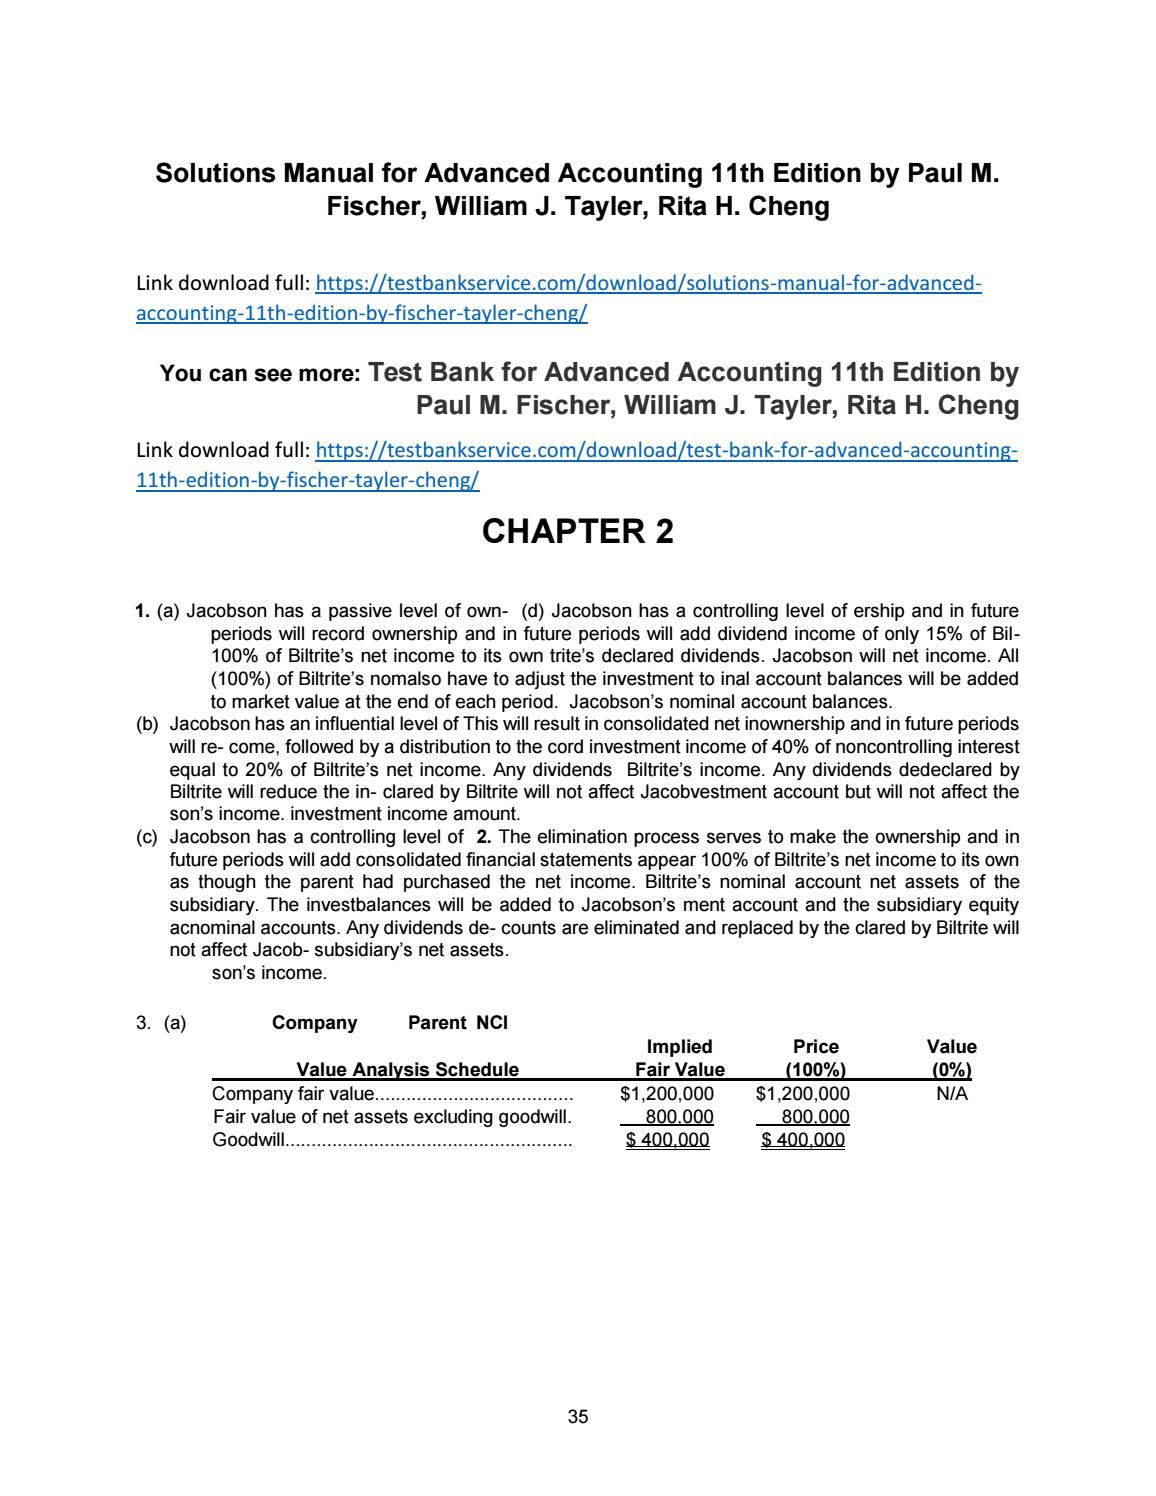 Download solutions manual for advanced accounting 11th edition by fischer  tayler cheng